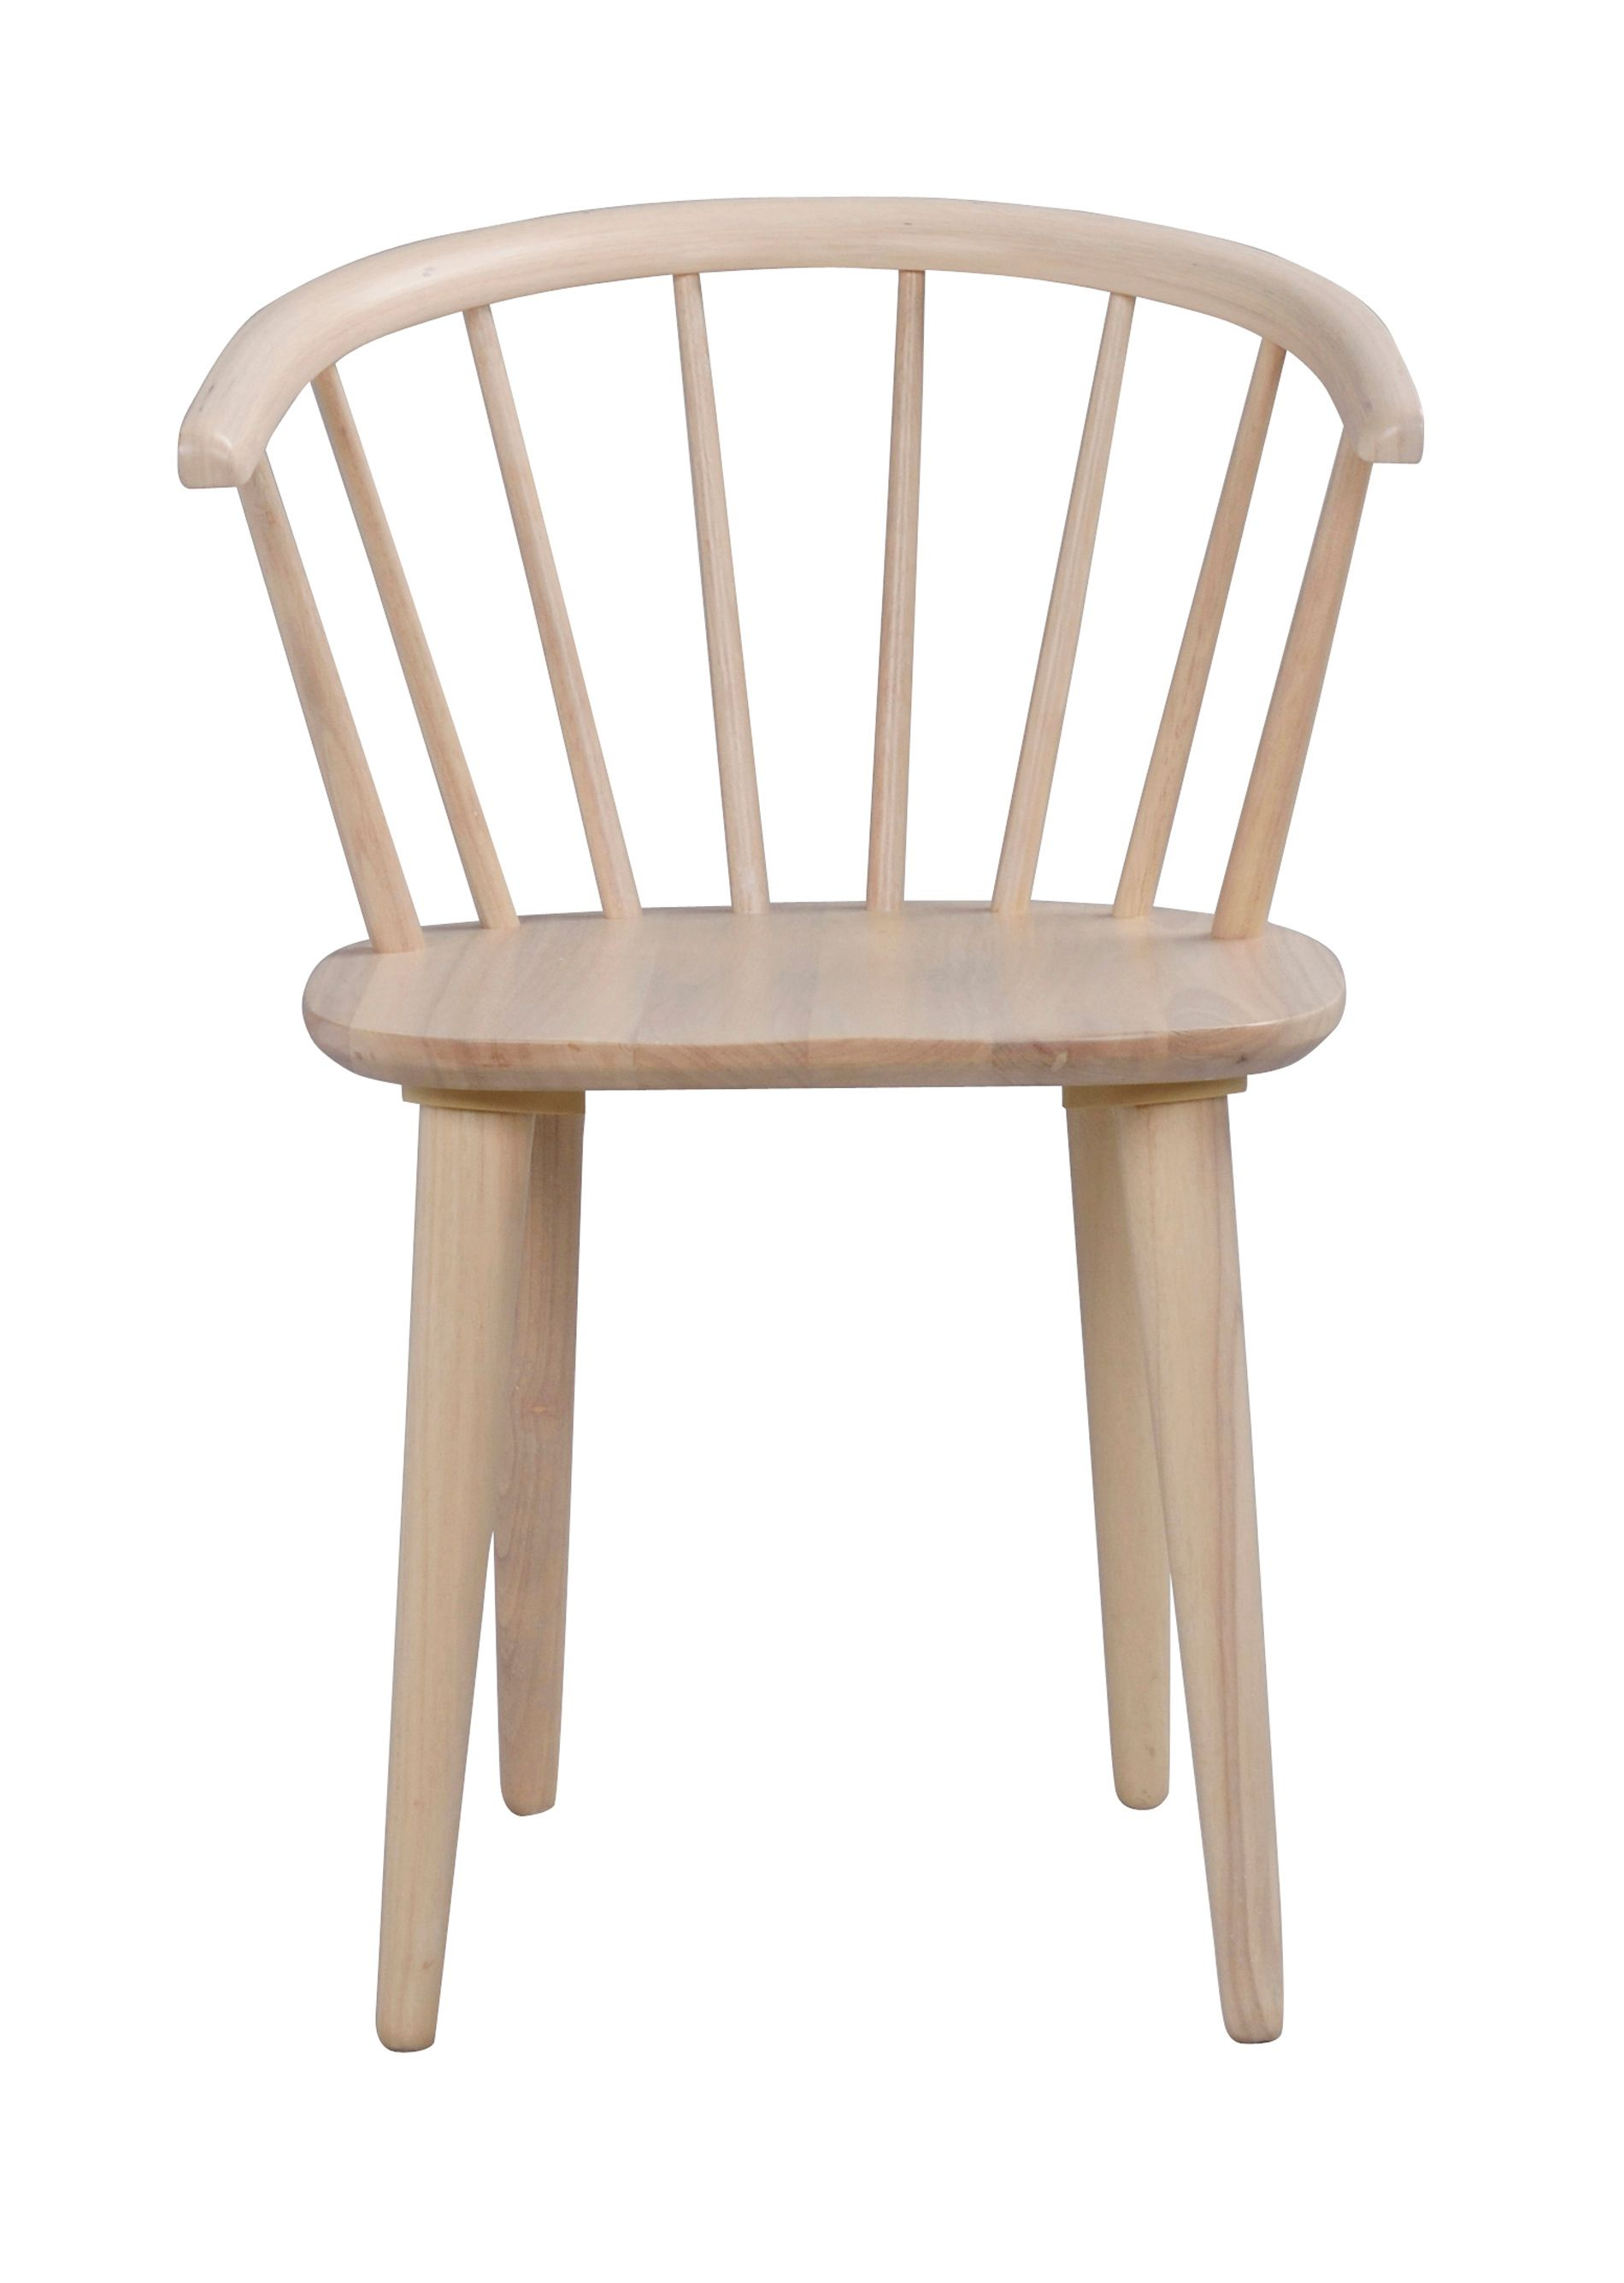 DAWSONE Carmen Whitewash Chair